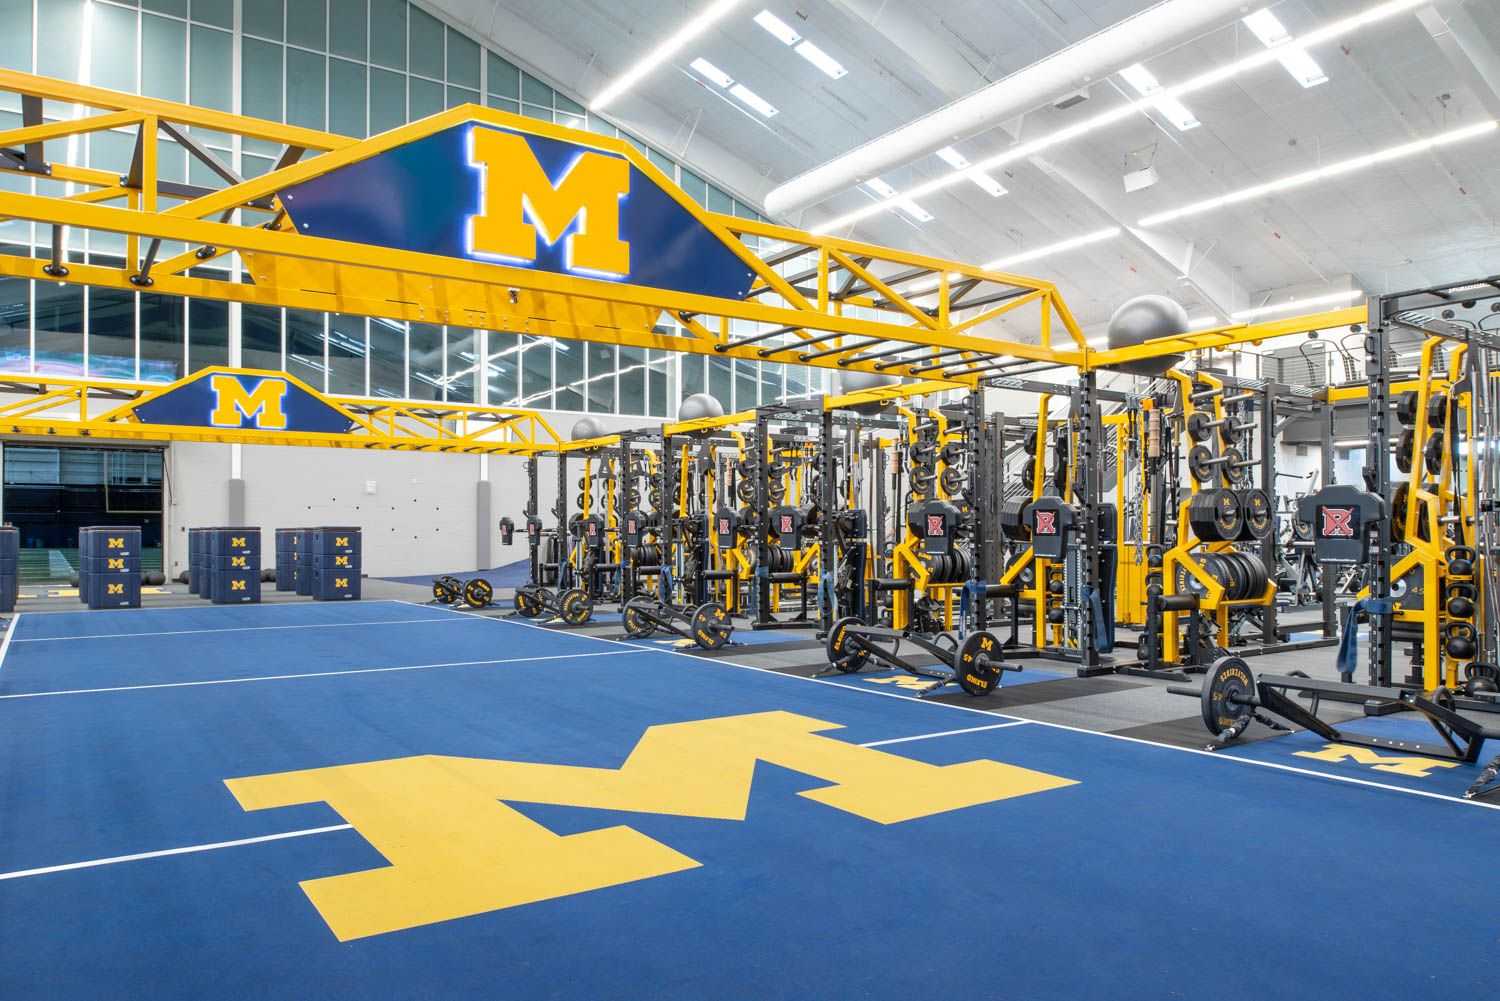 Michigan State Football Gym Rogers Athletic Google Search Michigan State Football Michigan State Michigan